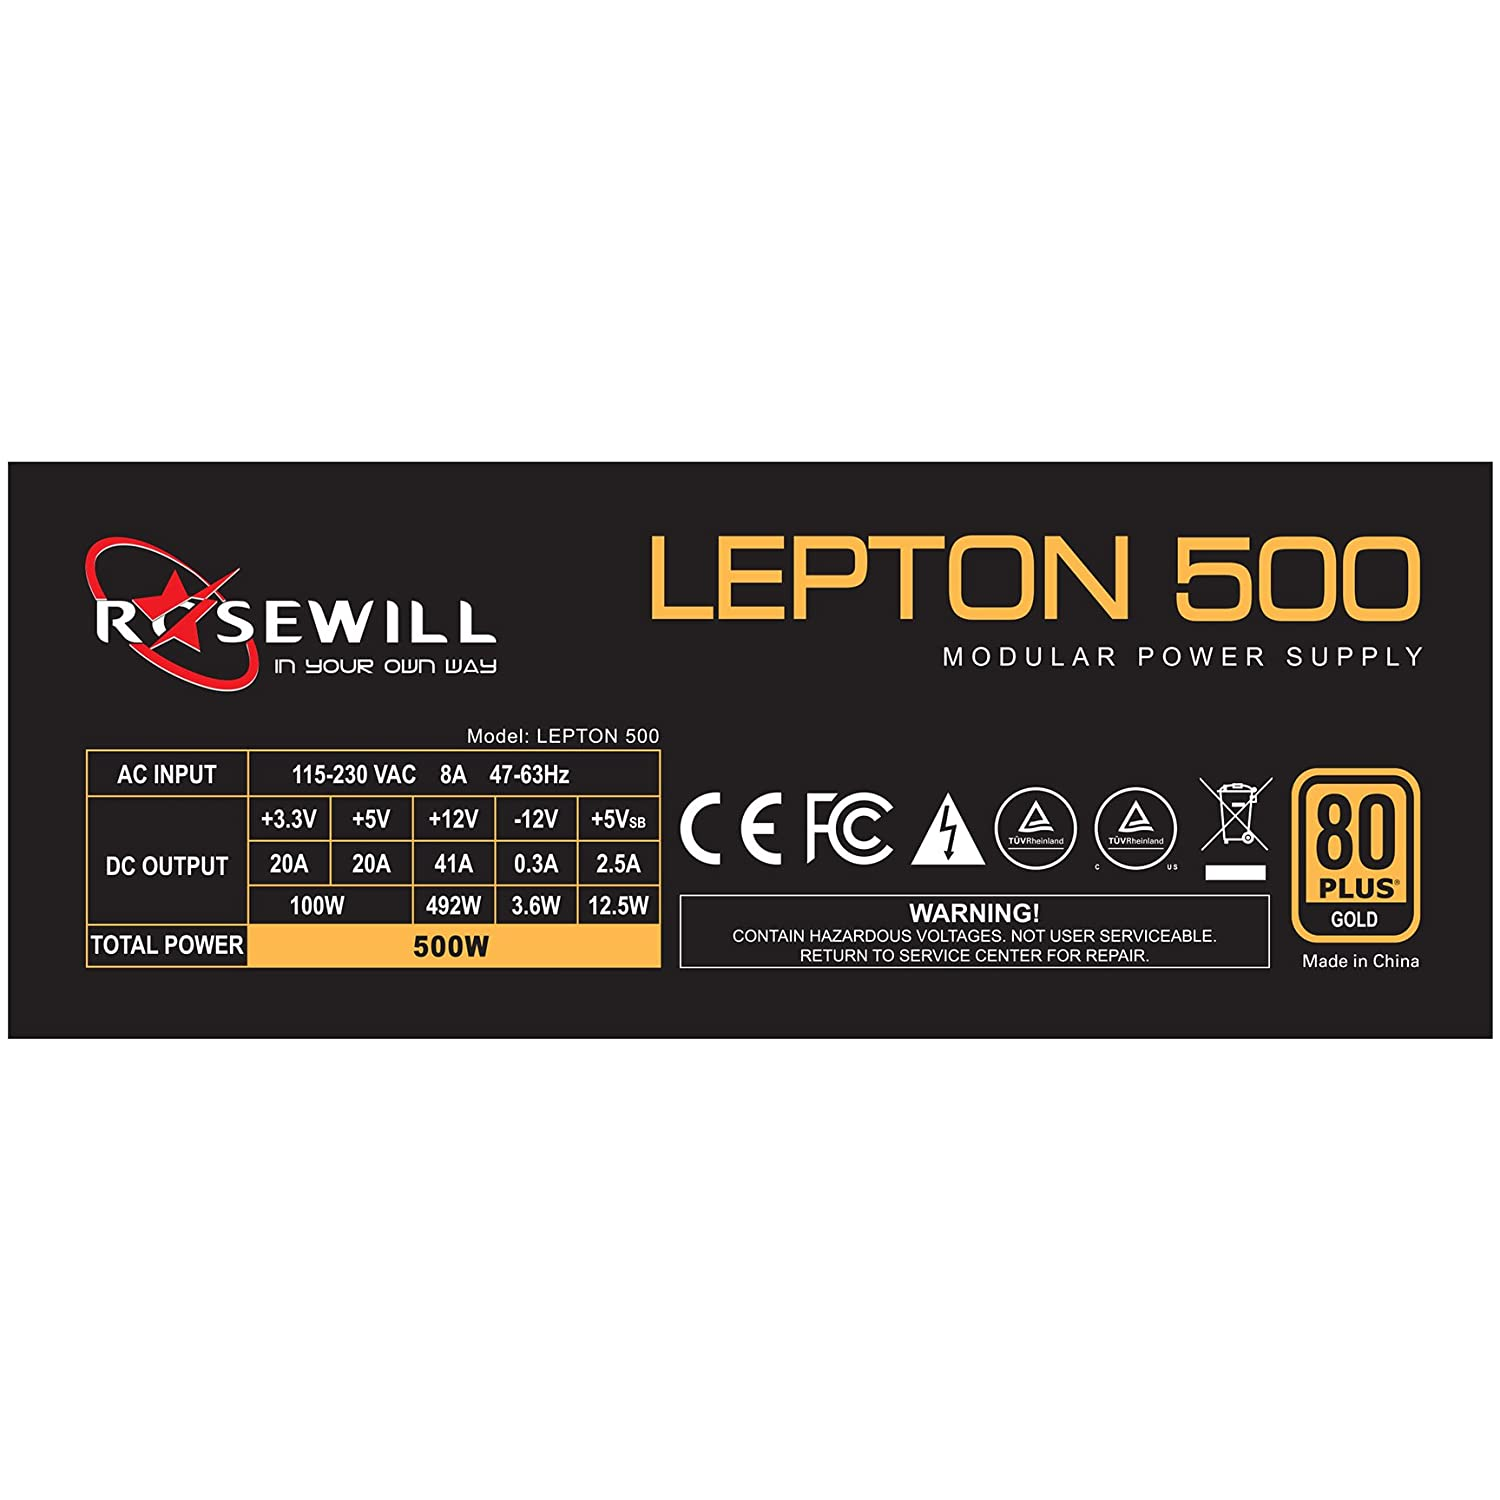 Rosewill Computer Modular Power Supply 80 Plus Gold Atx Schematic Diagram Additionally 500w Gaming Psu 12v 3 Year Warranty Lepton 500 Computers Accessories